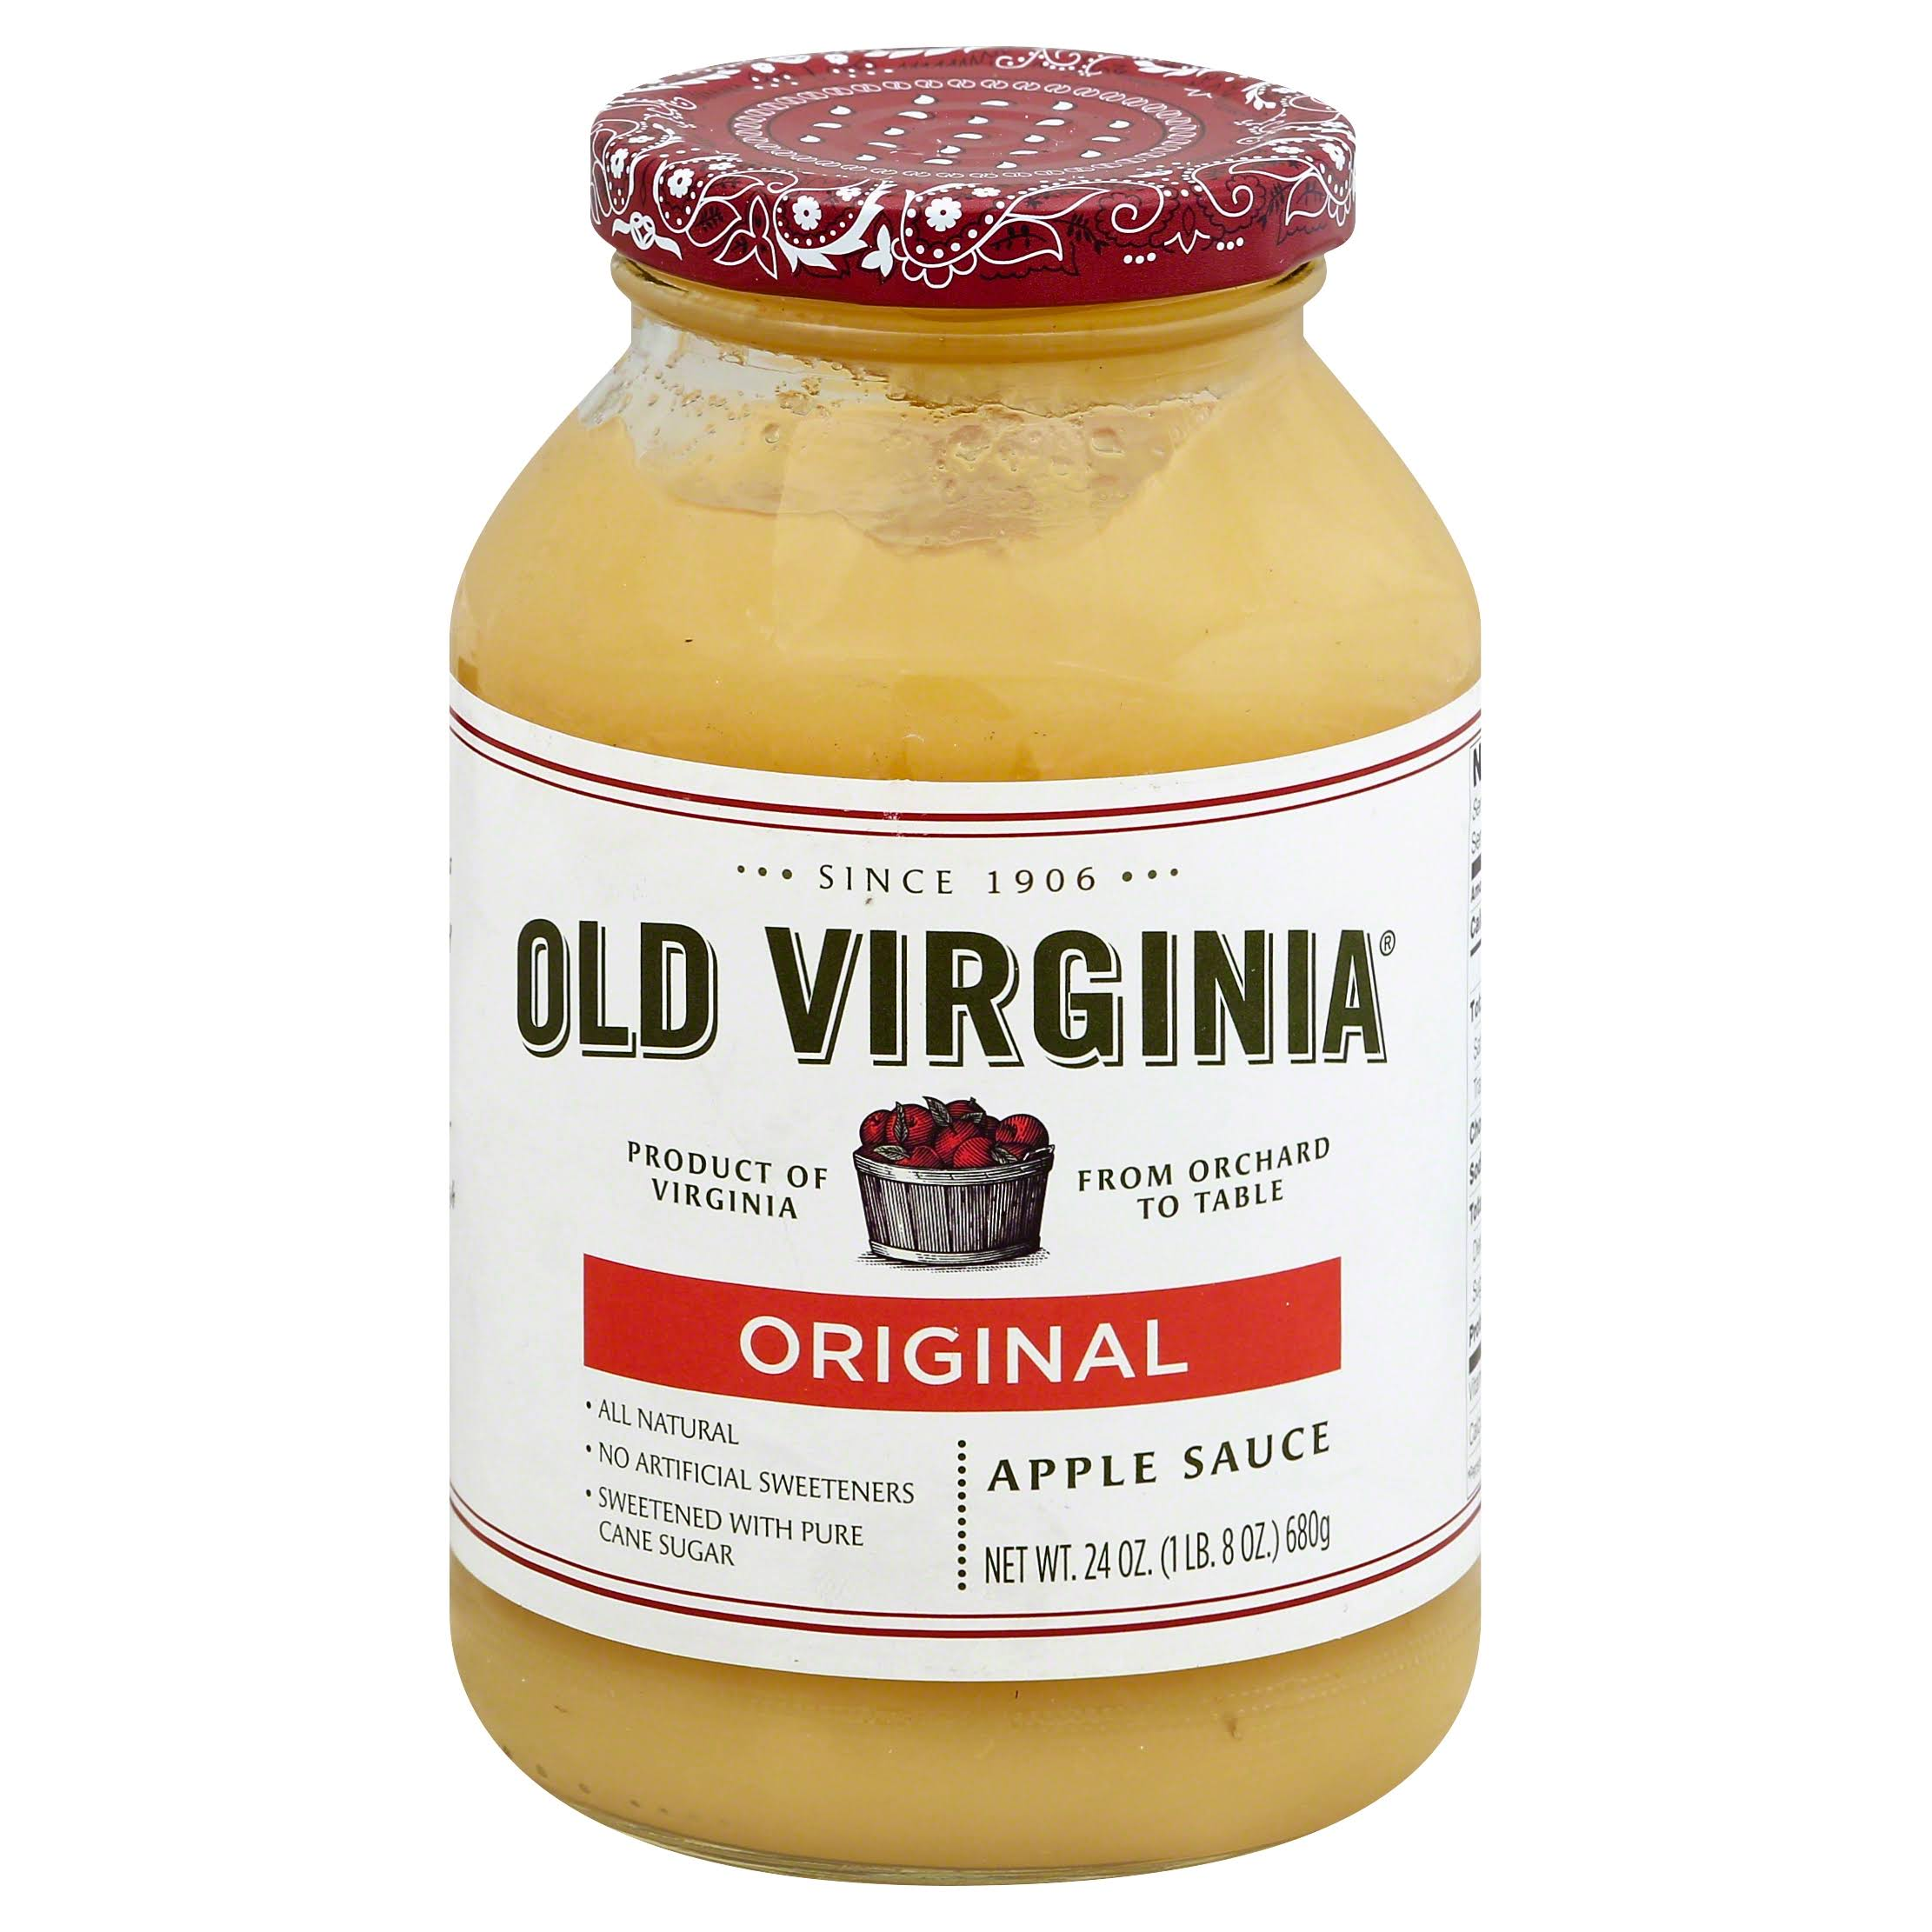 Old Virginia Original Apple Sauce - 24oz